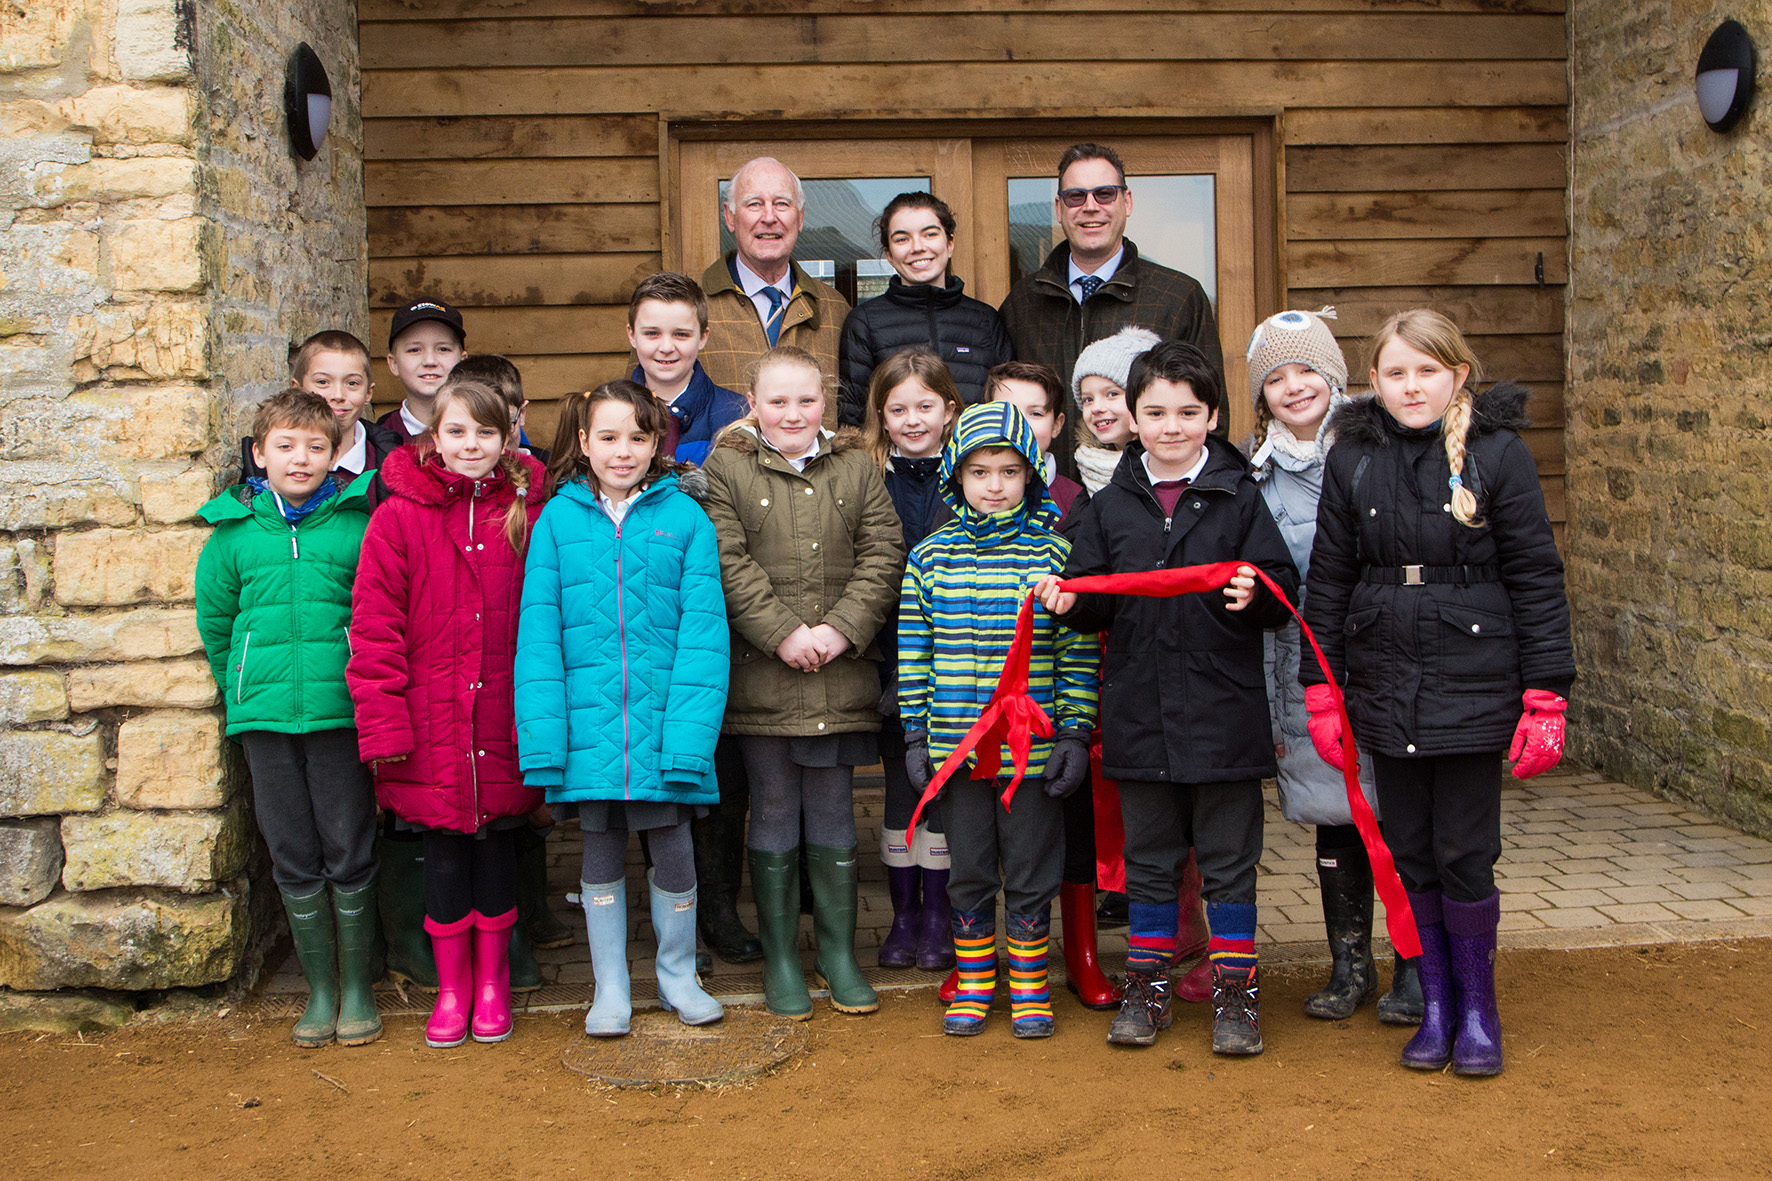 Norman Grundon, Chairman of Grundon Waste Management (back left) and Neil Grundon, Deputy Chairman (back right) celebrate the opening of the new education centre at Greystones Farm with children from Bourton-on-the-Water Primary School.